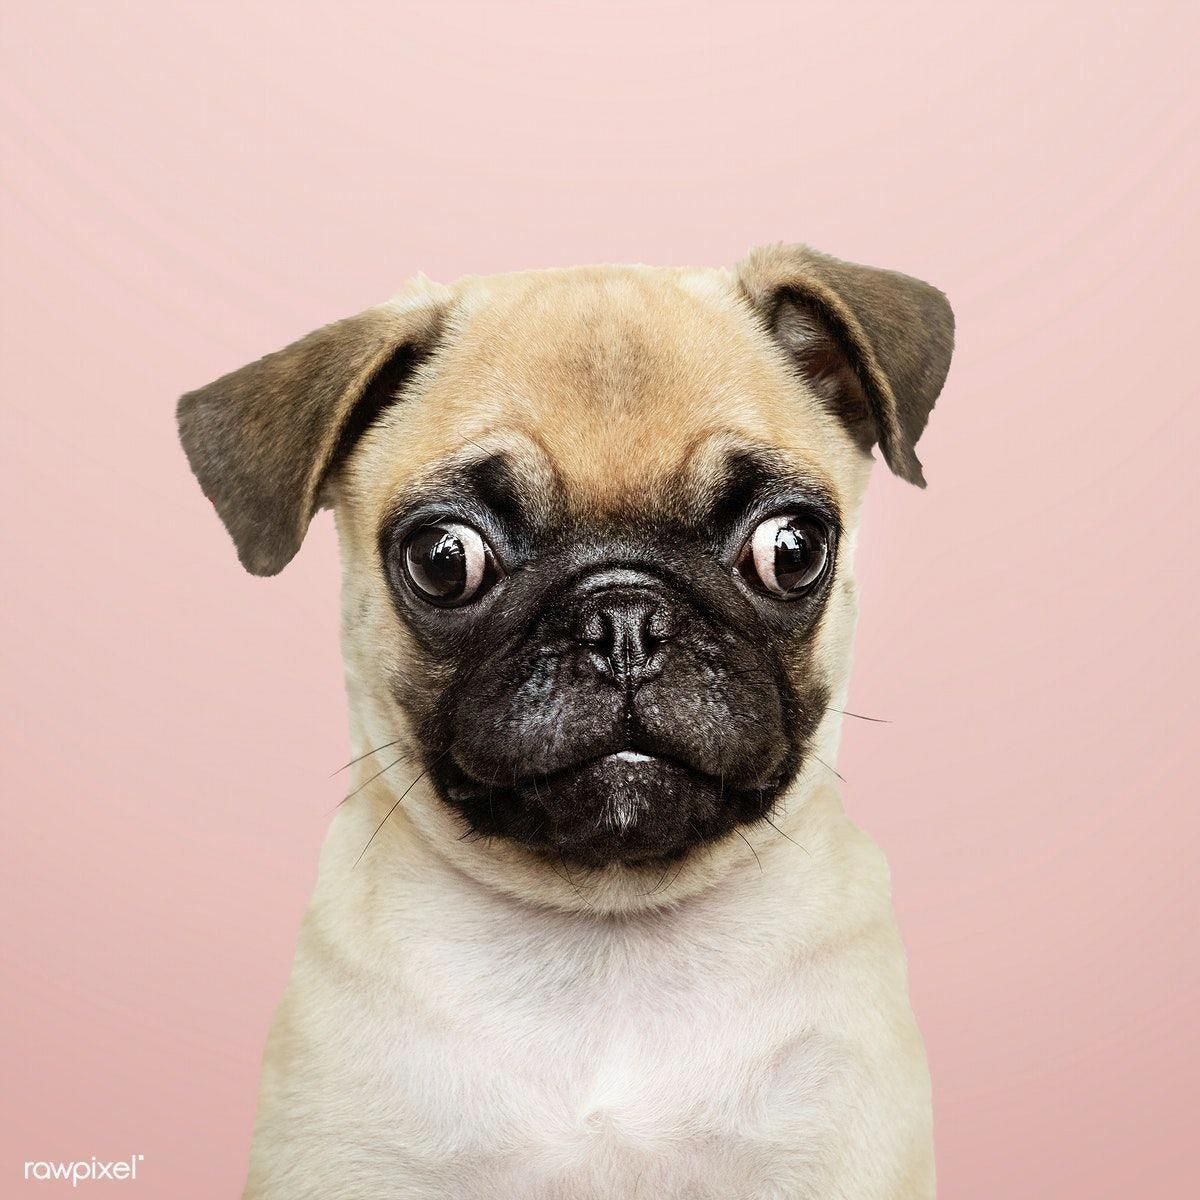 Check out our site for more information on pug